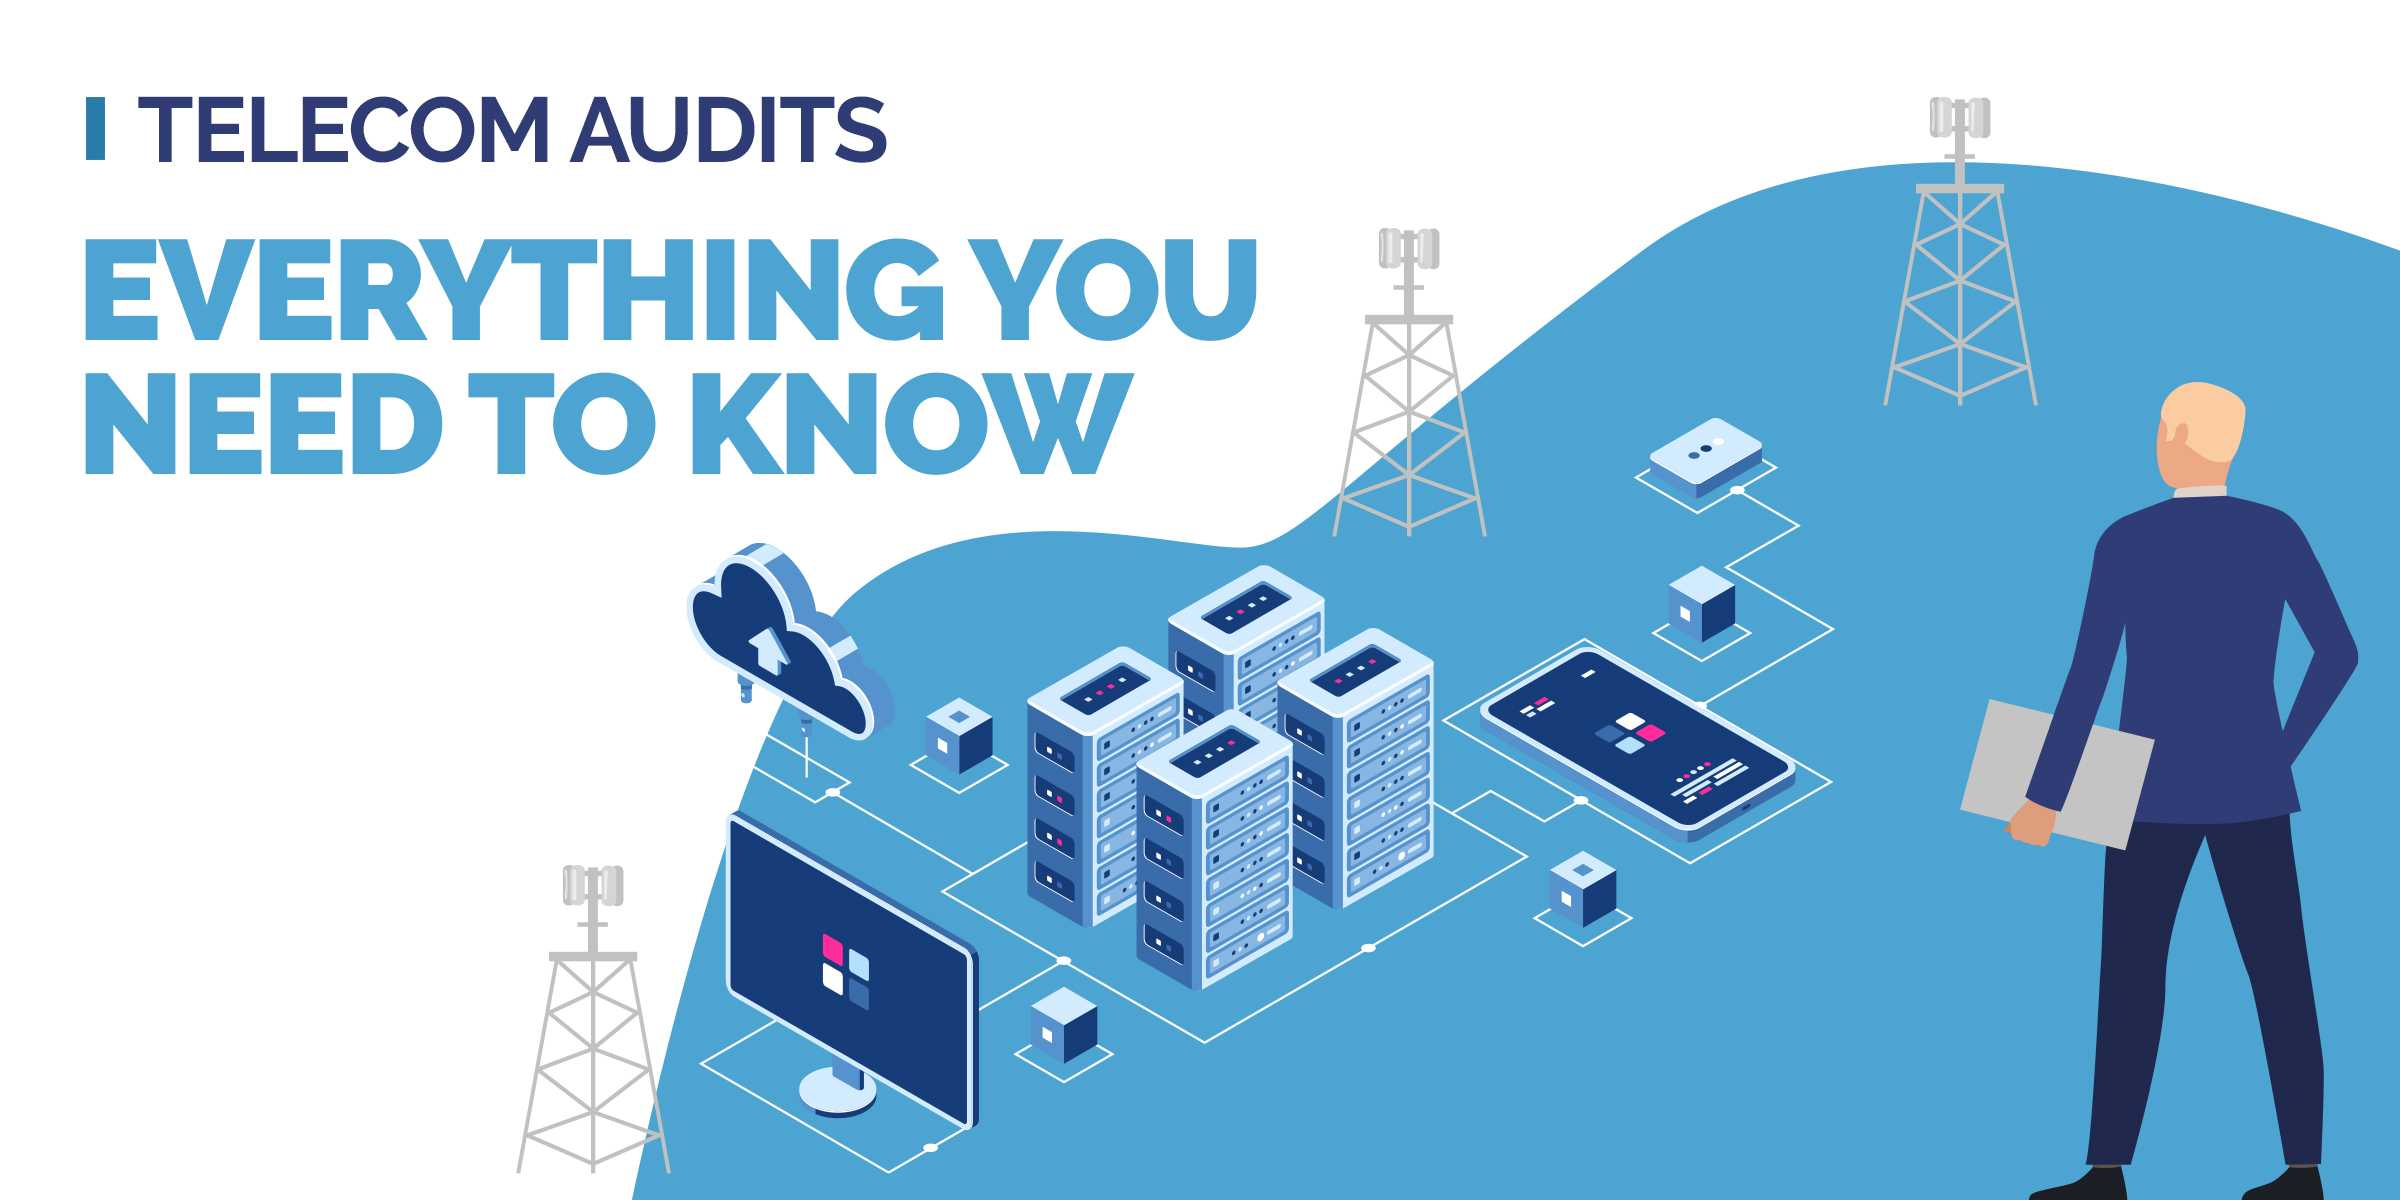 Telecom Audits - Everything You Need to Know